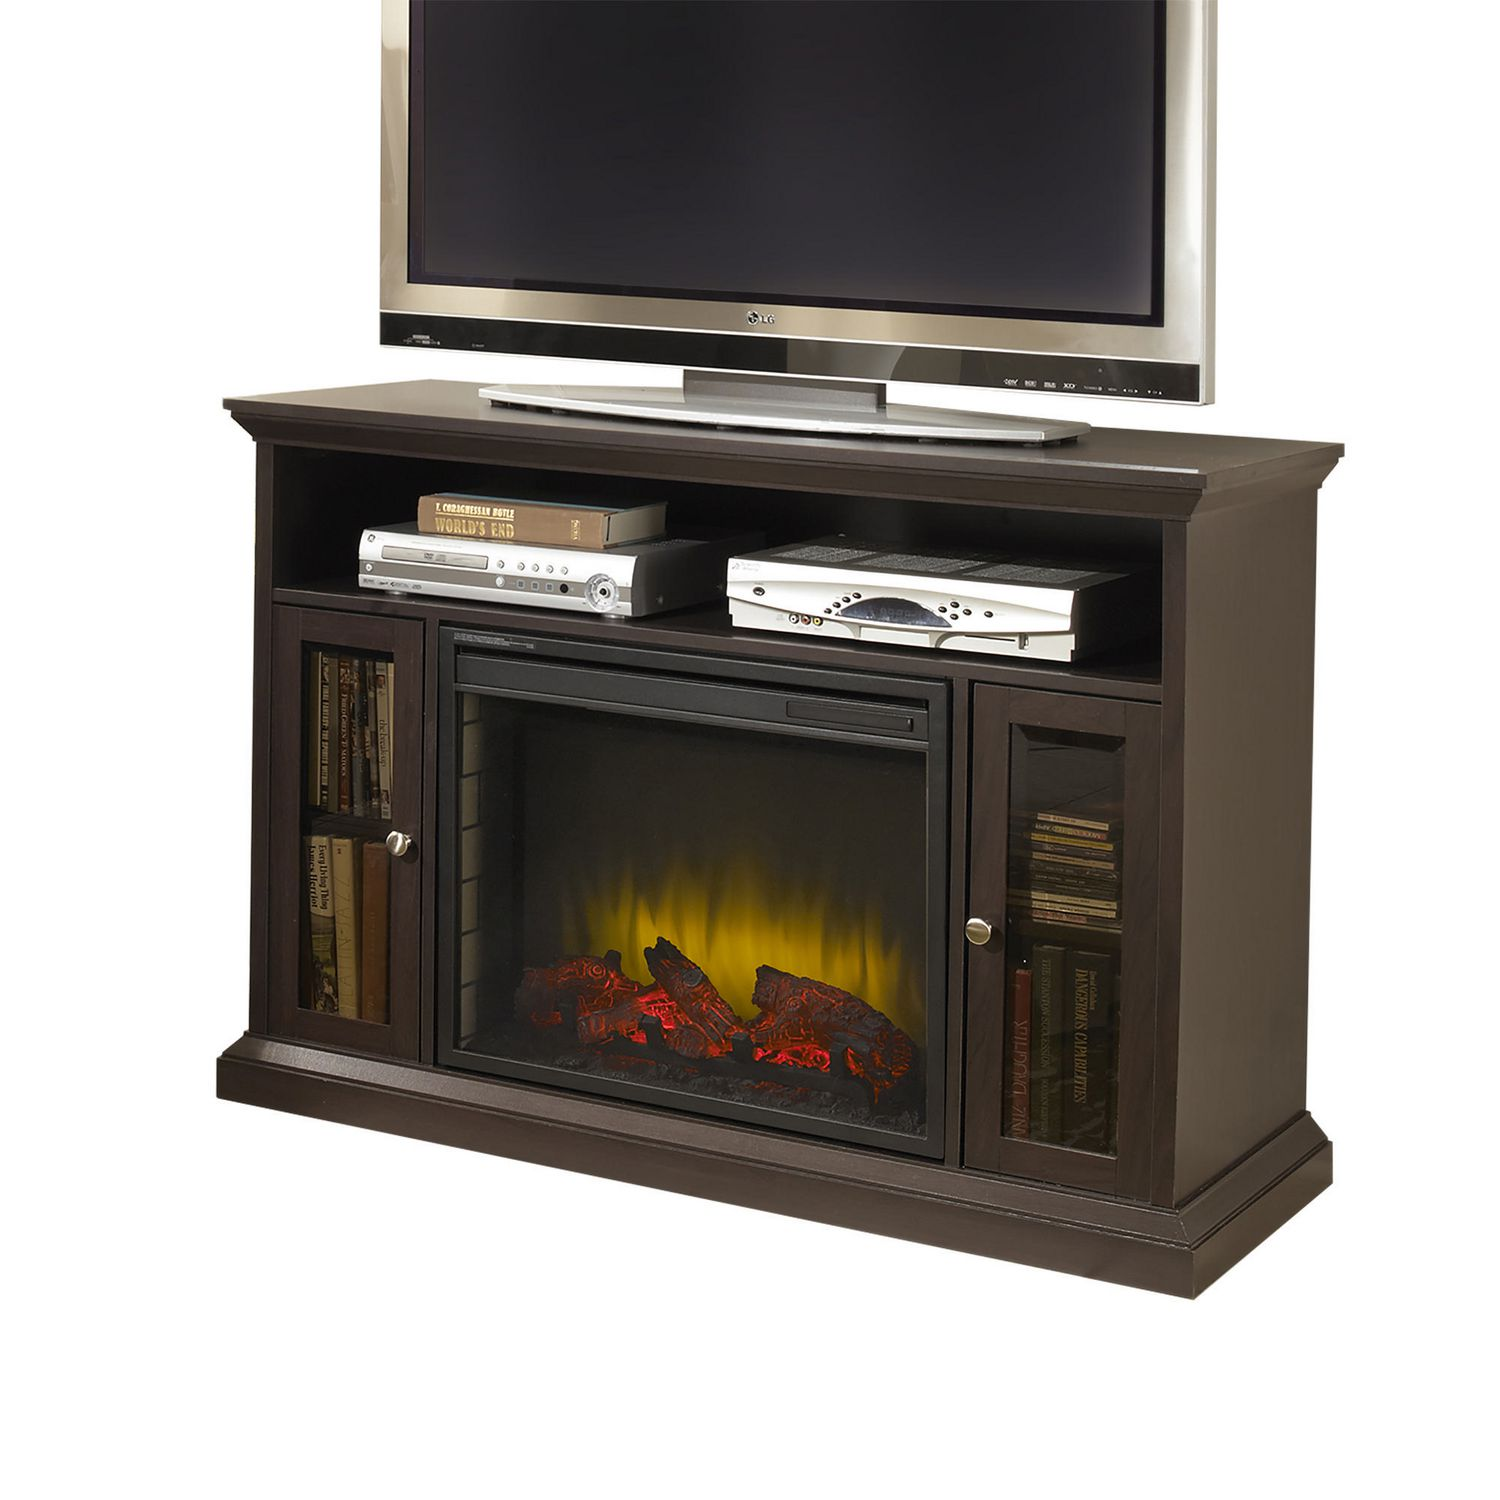 appealing for and picture up image console espresso to electric rustic styles hill chimney media trend tvs chestnut awesome trends fireplace inspiration in